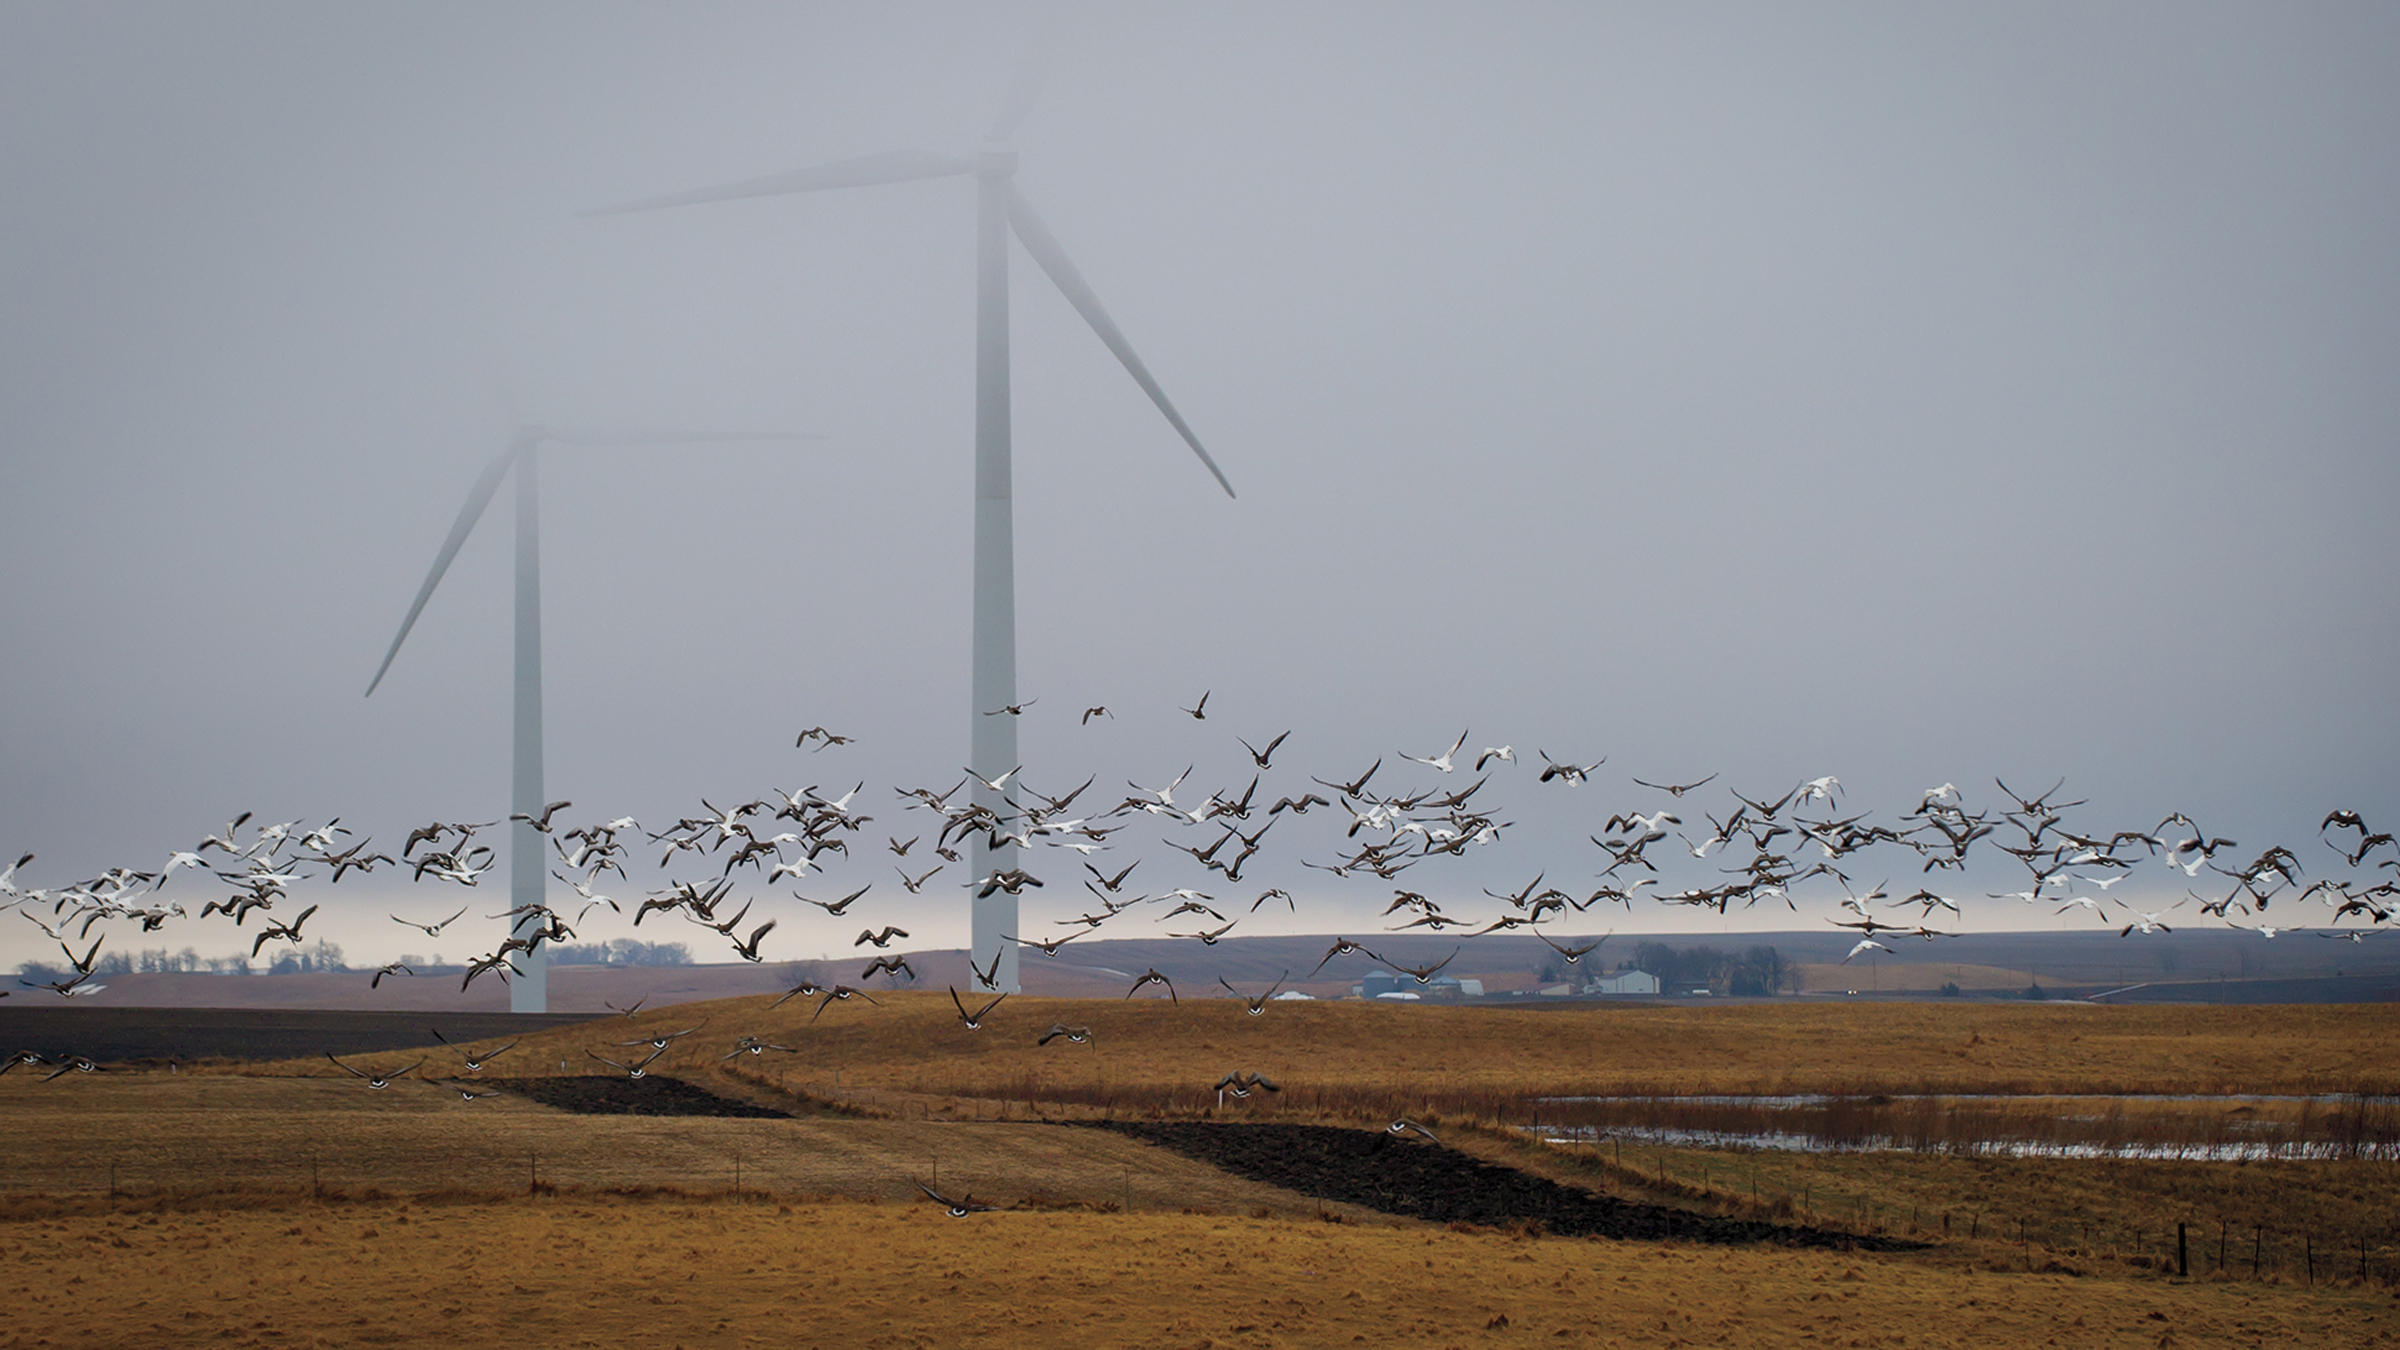 Audubon New York: Renewable Energy and Birds - Photo provided by Audubon